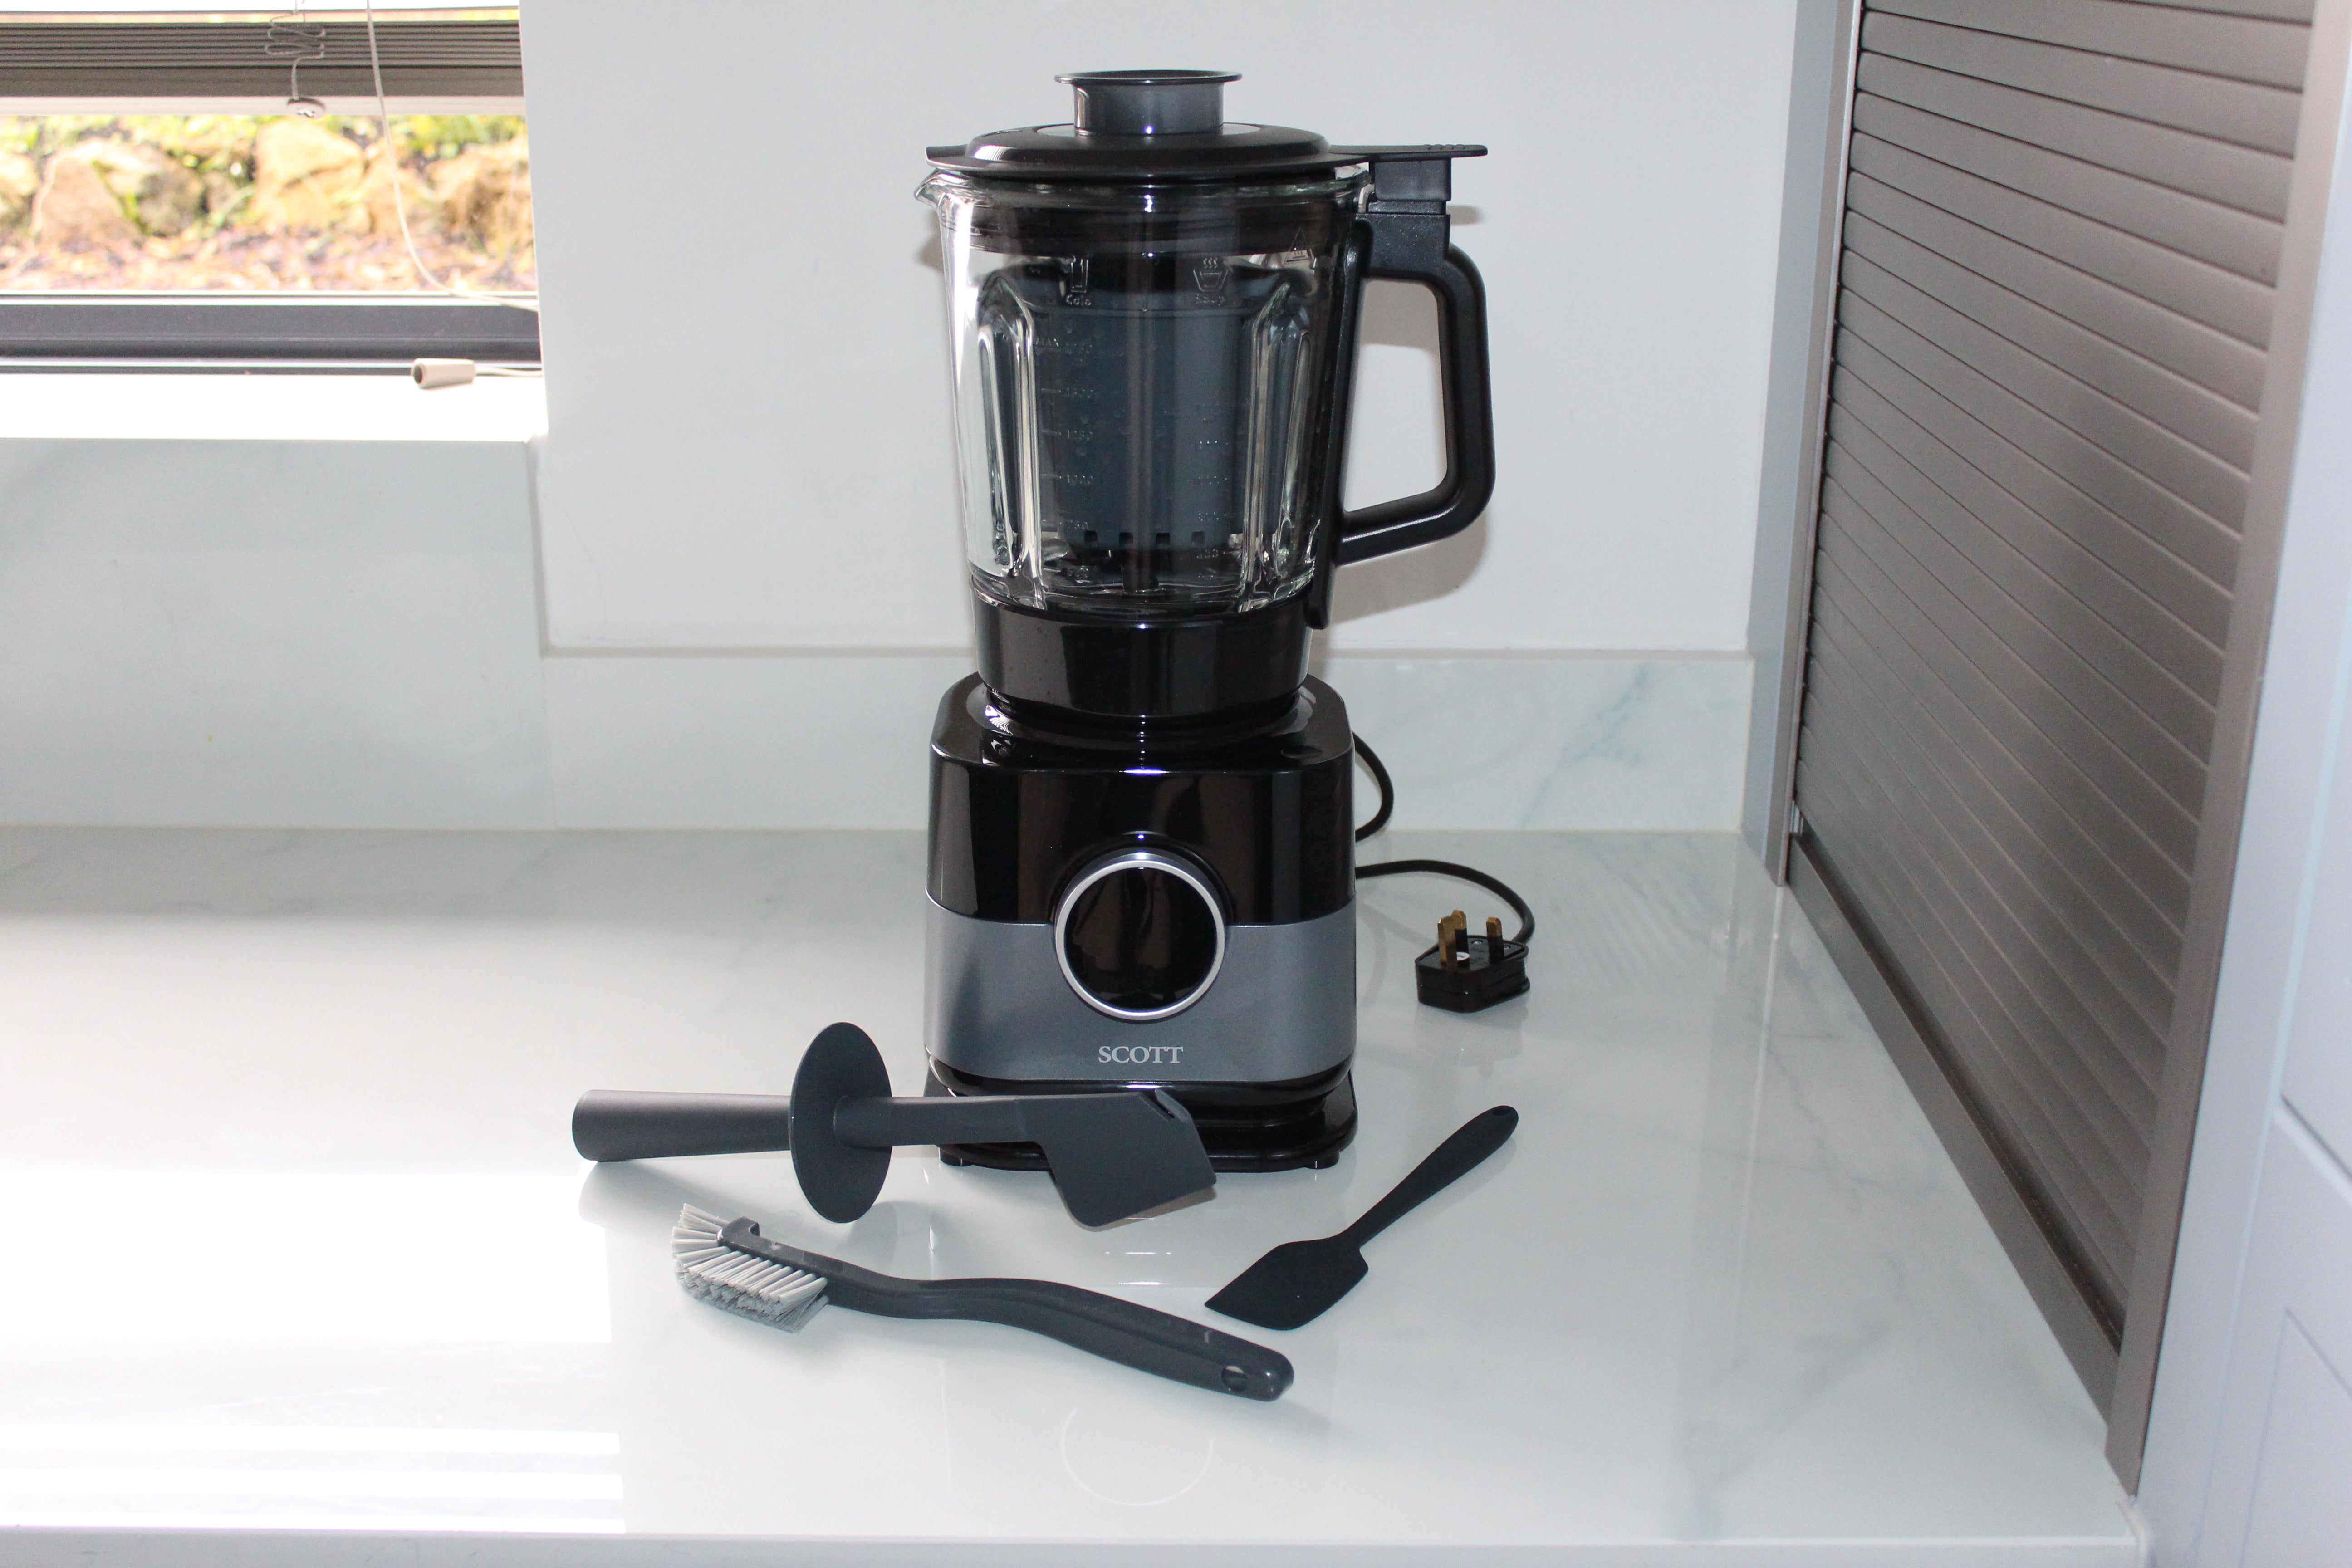 All In One Kitchen Appliance.Scott Simplissimo Chef All In One Cook Blender Review Trusted Reviews